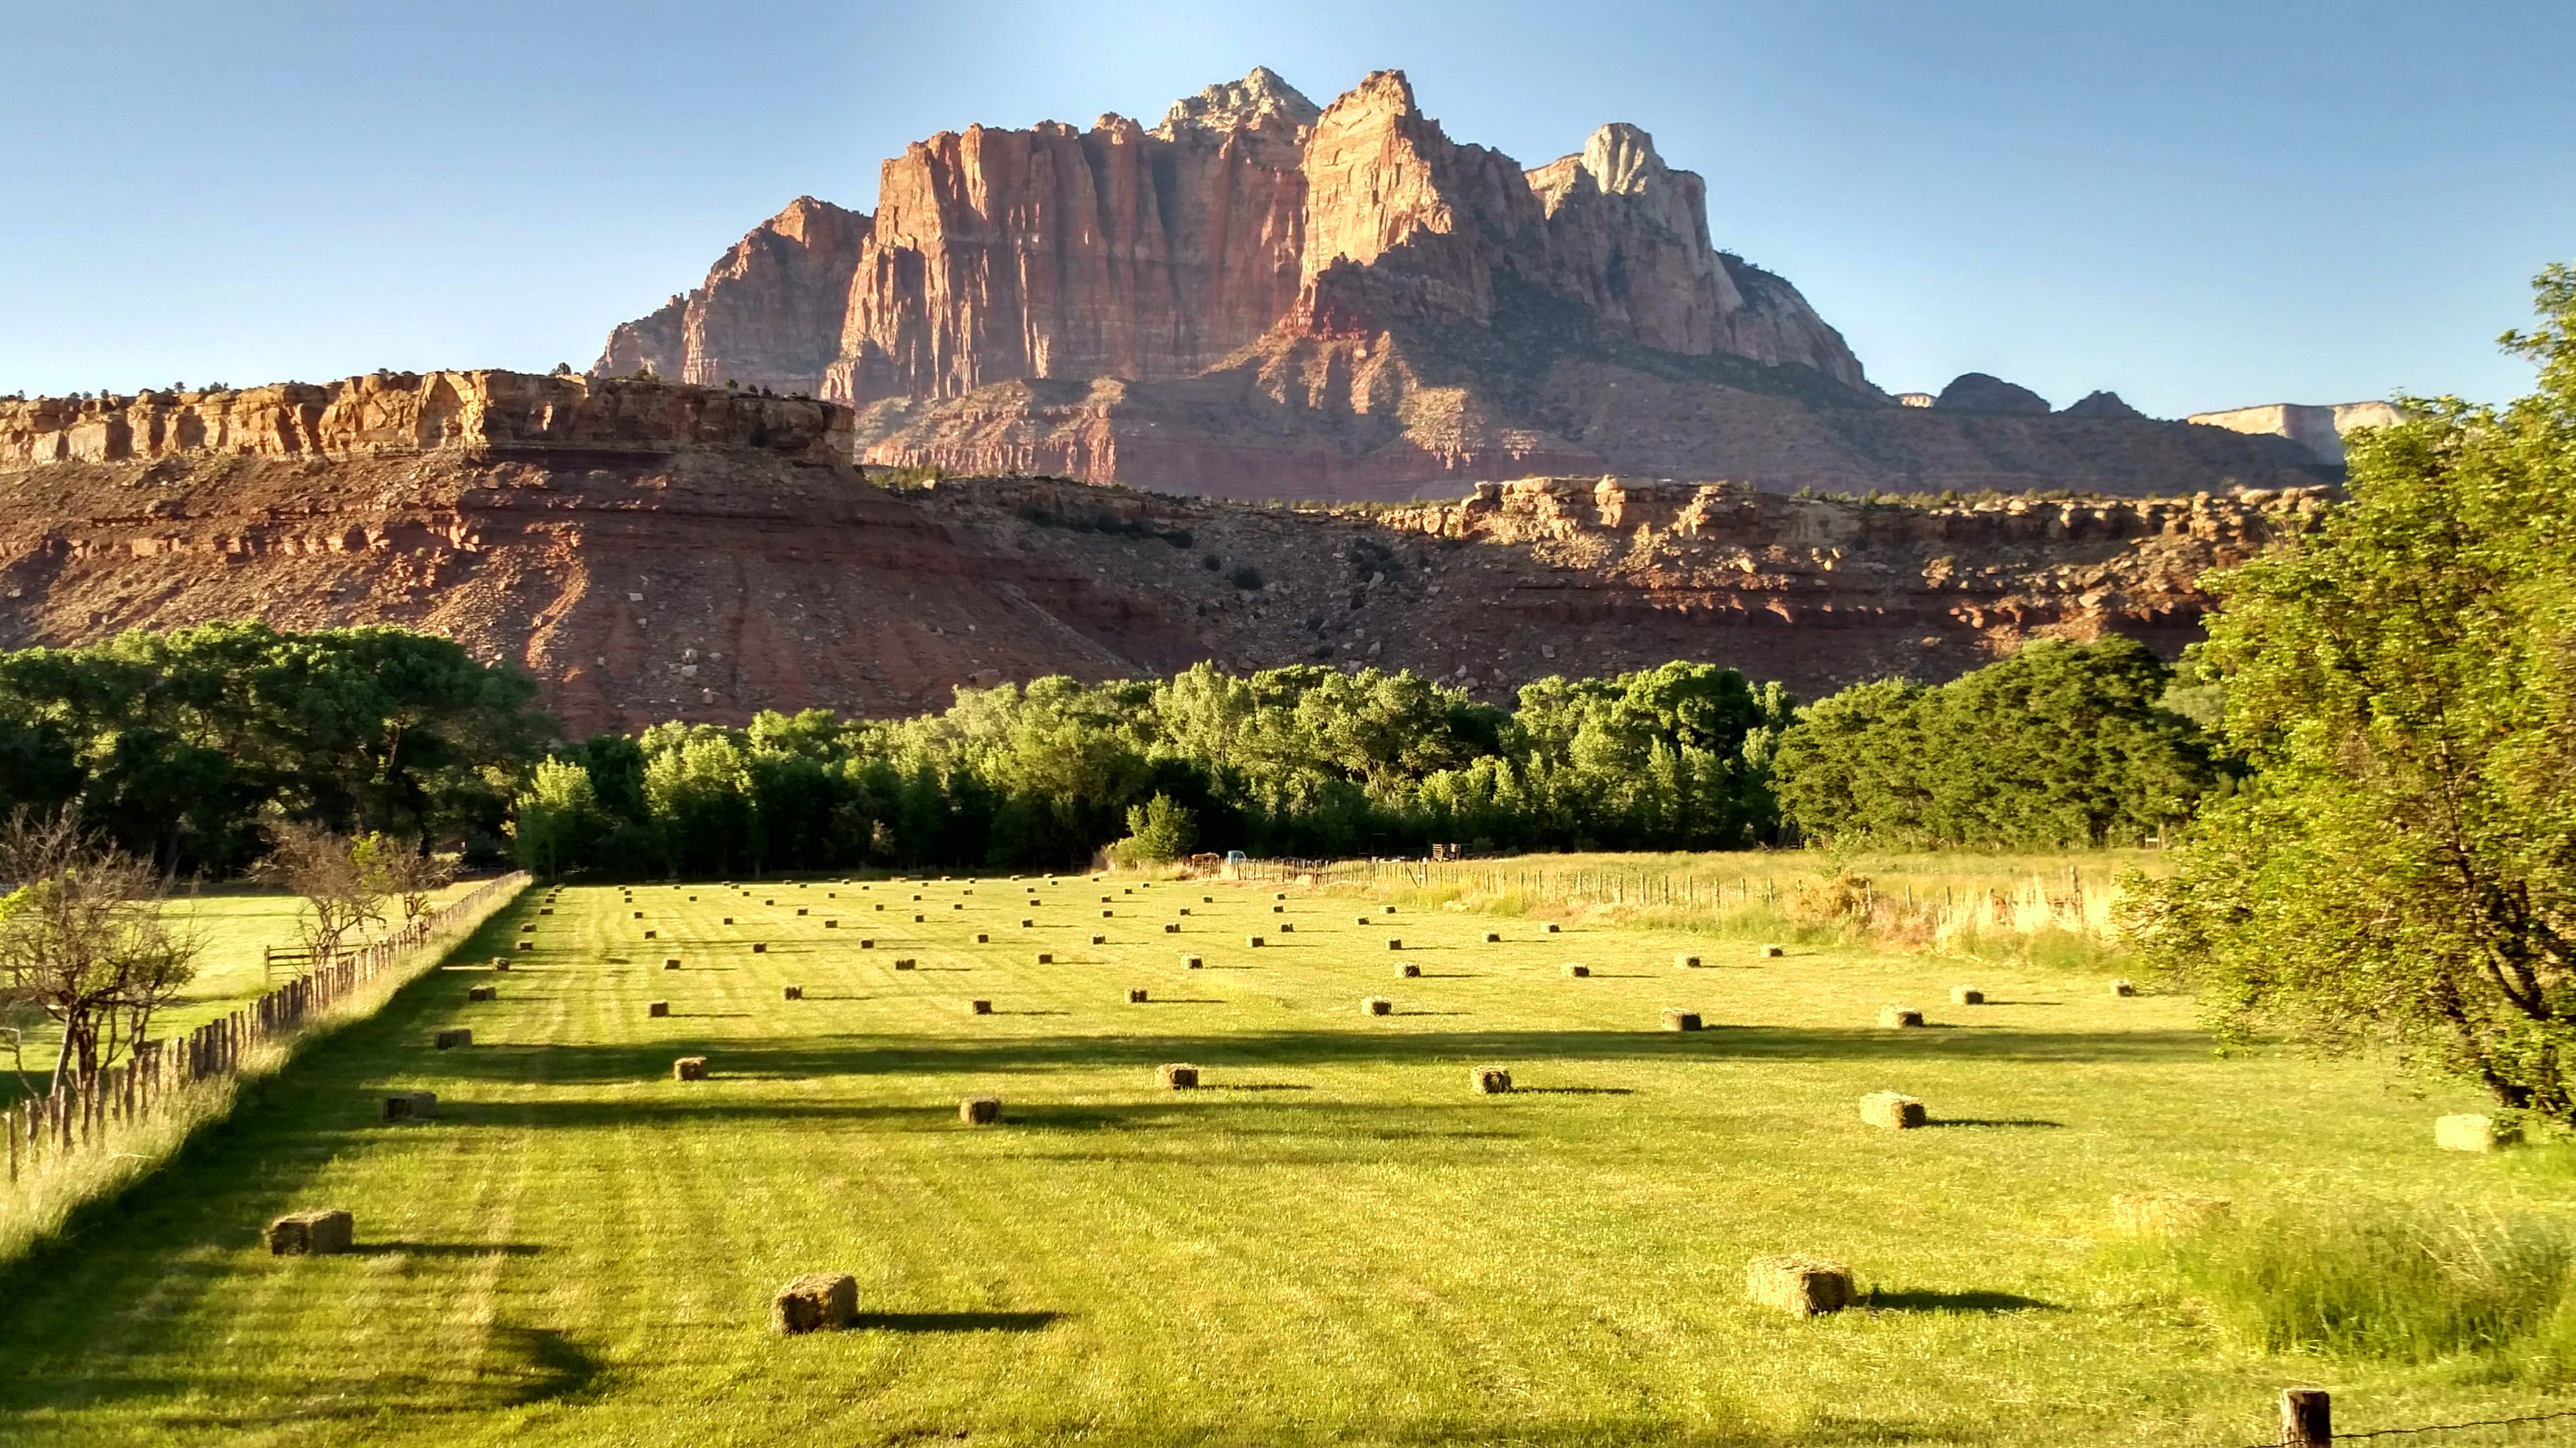 Late-afternoon-light-on-hay-bales-in-pastures-below-mt-kinesava-in-zion-national-park-utah-962933550_4212x2369